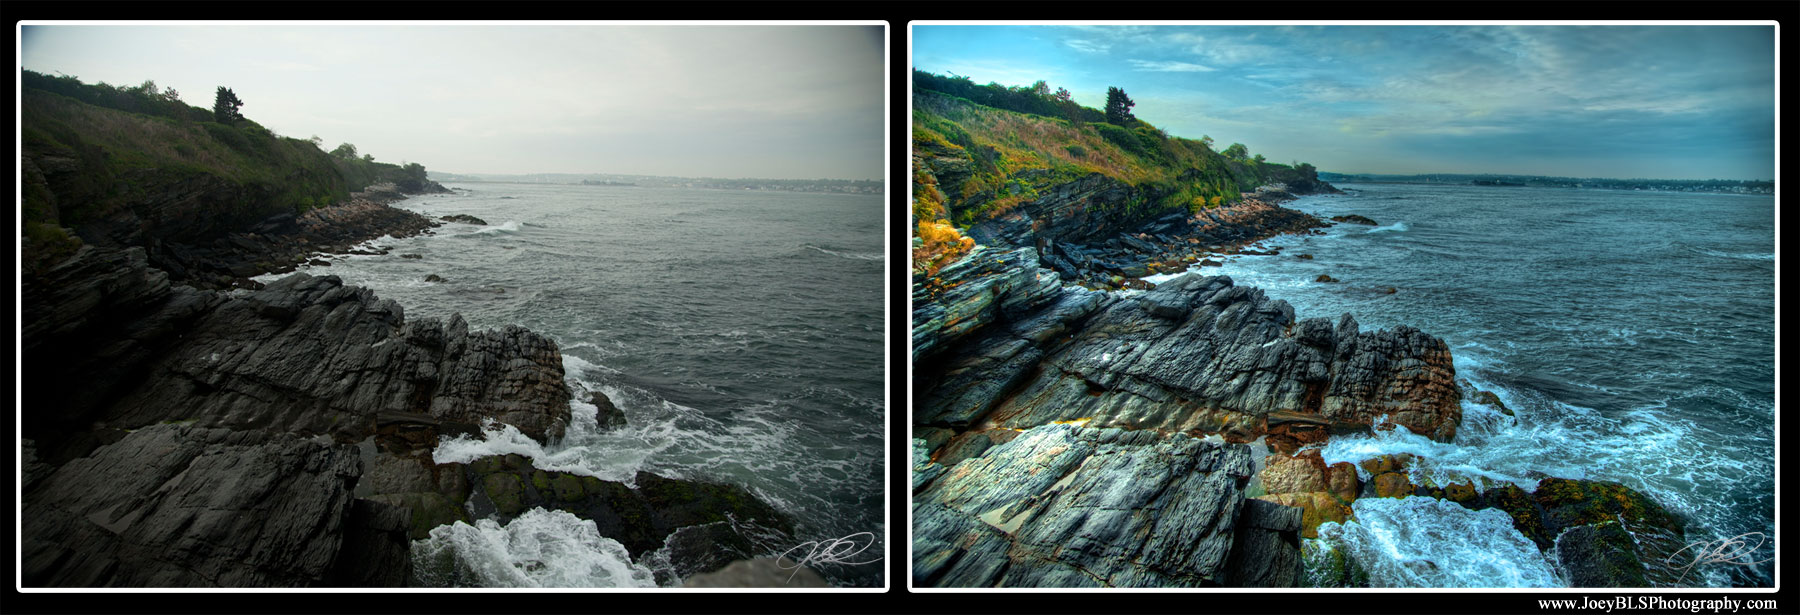 HDR Before and After of Rocks along Ocean Avenue in Newport, RI